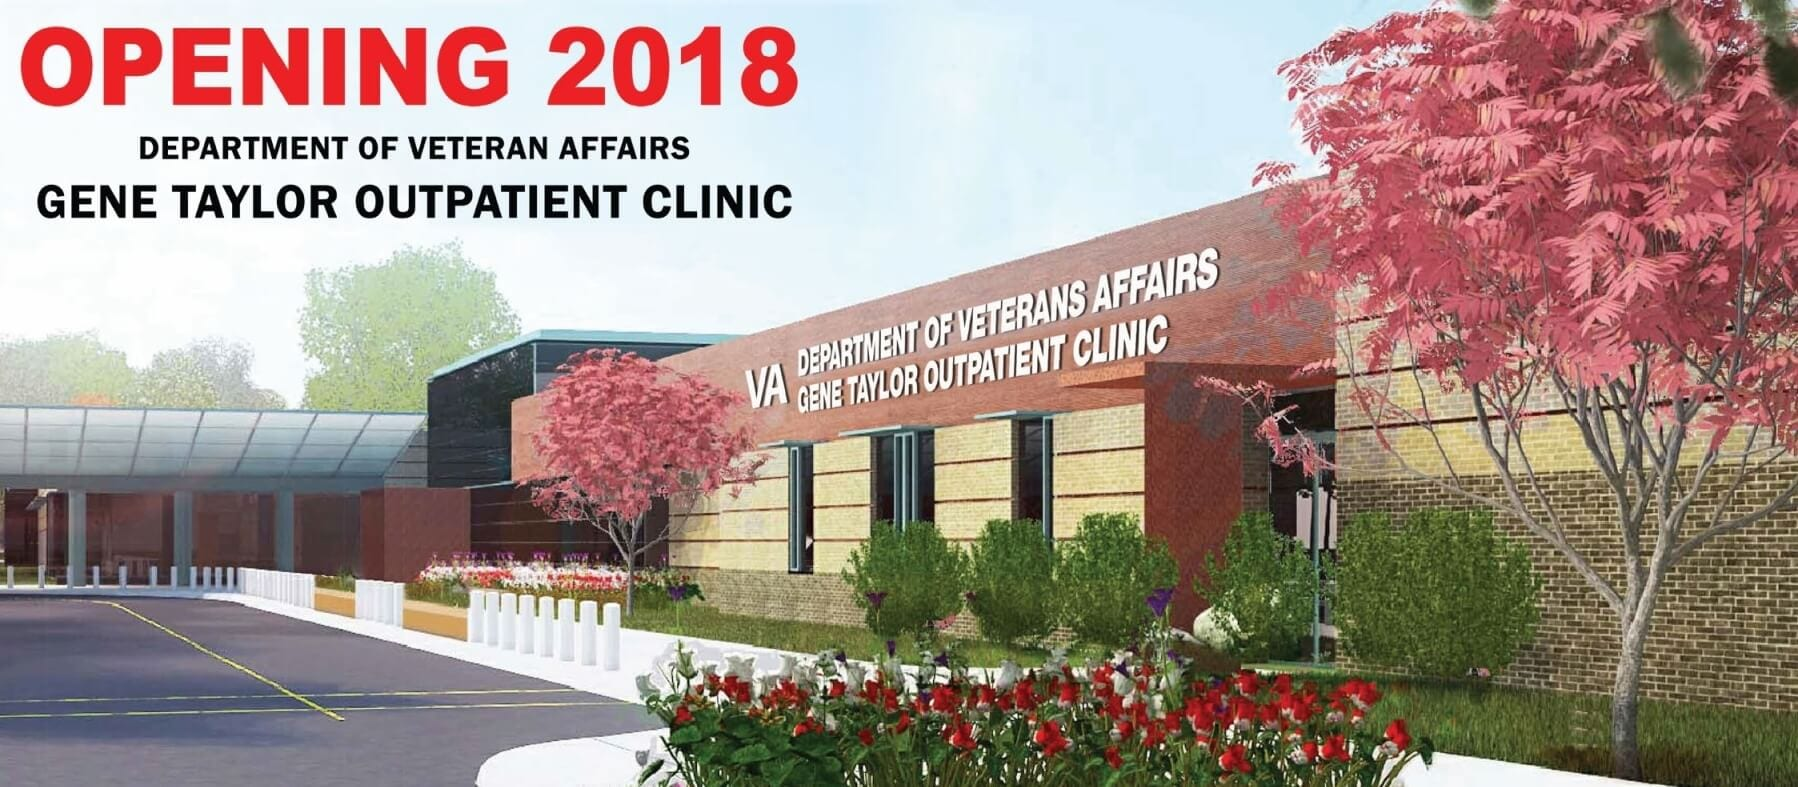 Veterans-Affairs-Gene-Taylor-Community-Outpatient-Clinic-Springfield-Missouri-Project